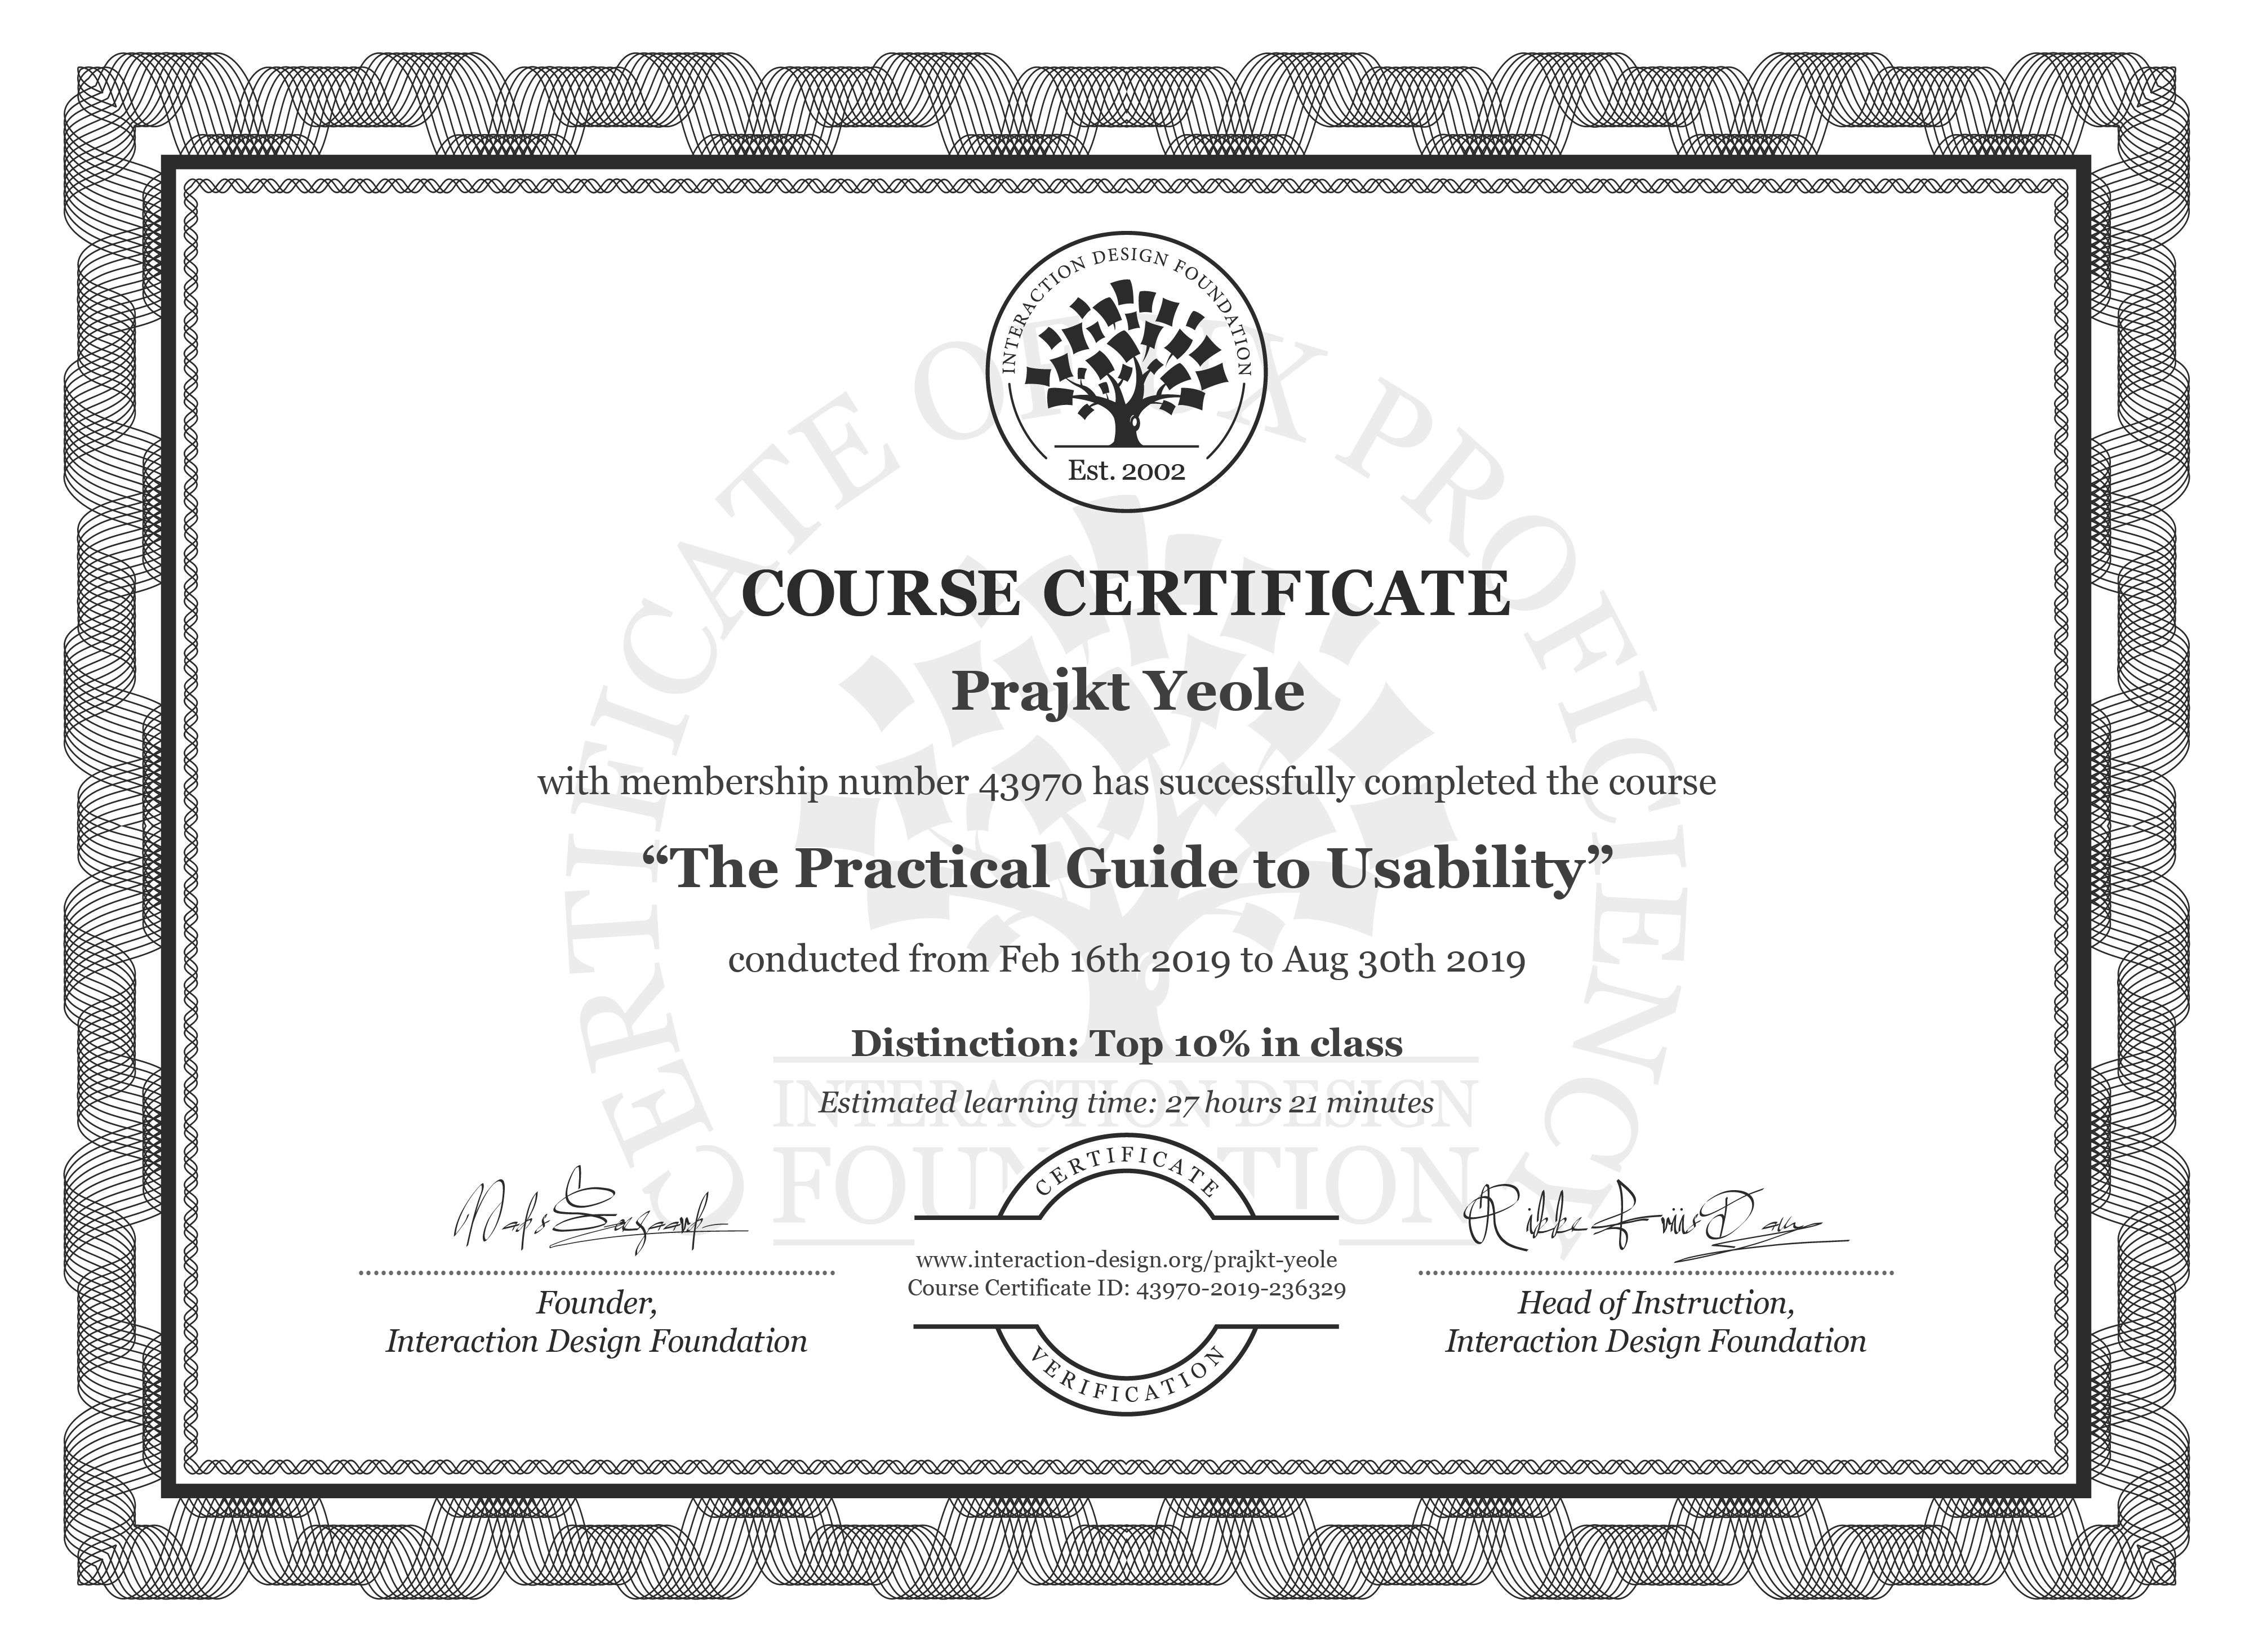 Prajkt Yeole's Course Certificate: The Practical Guide to Usability